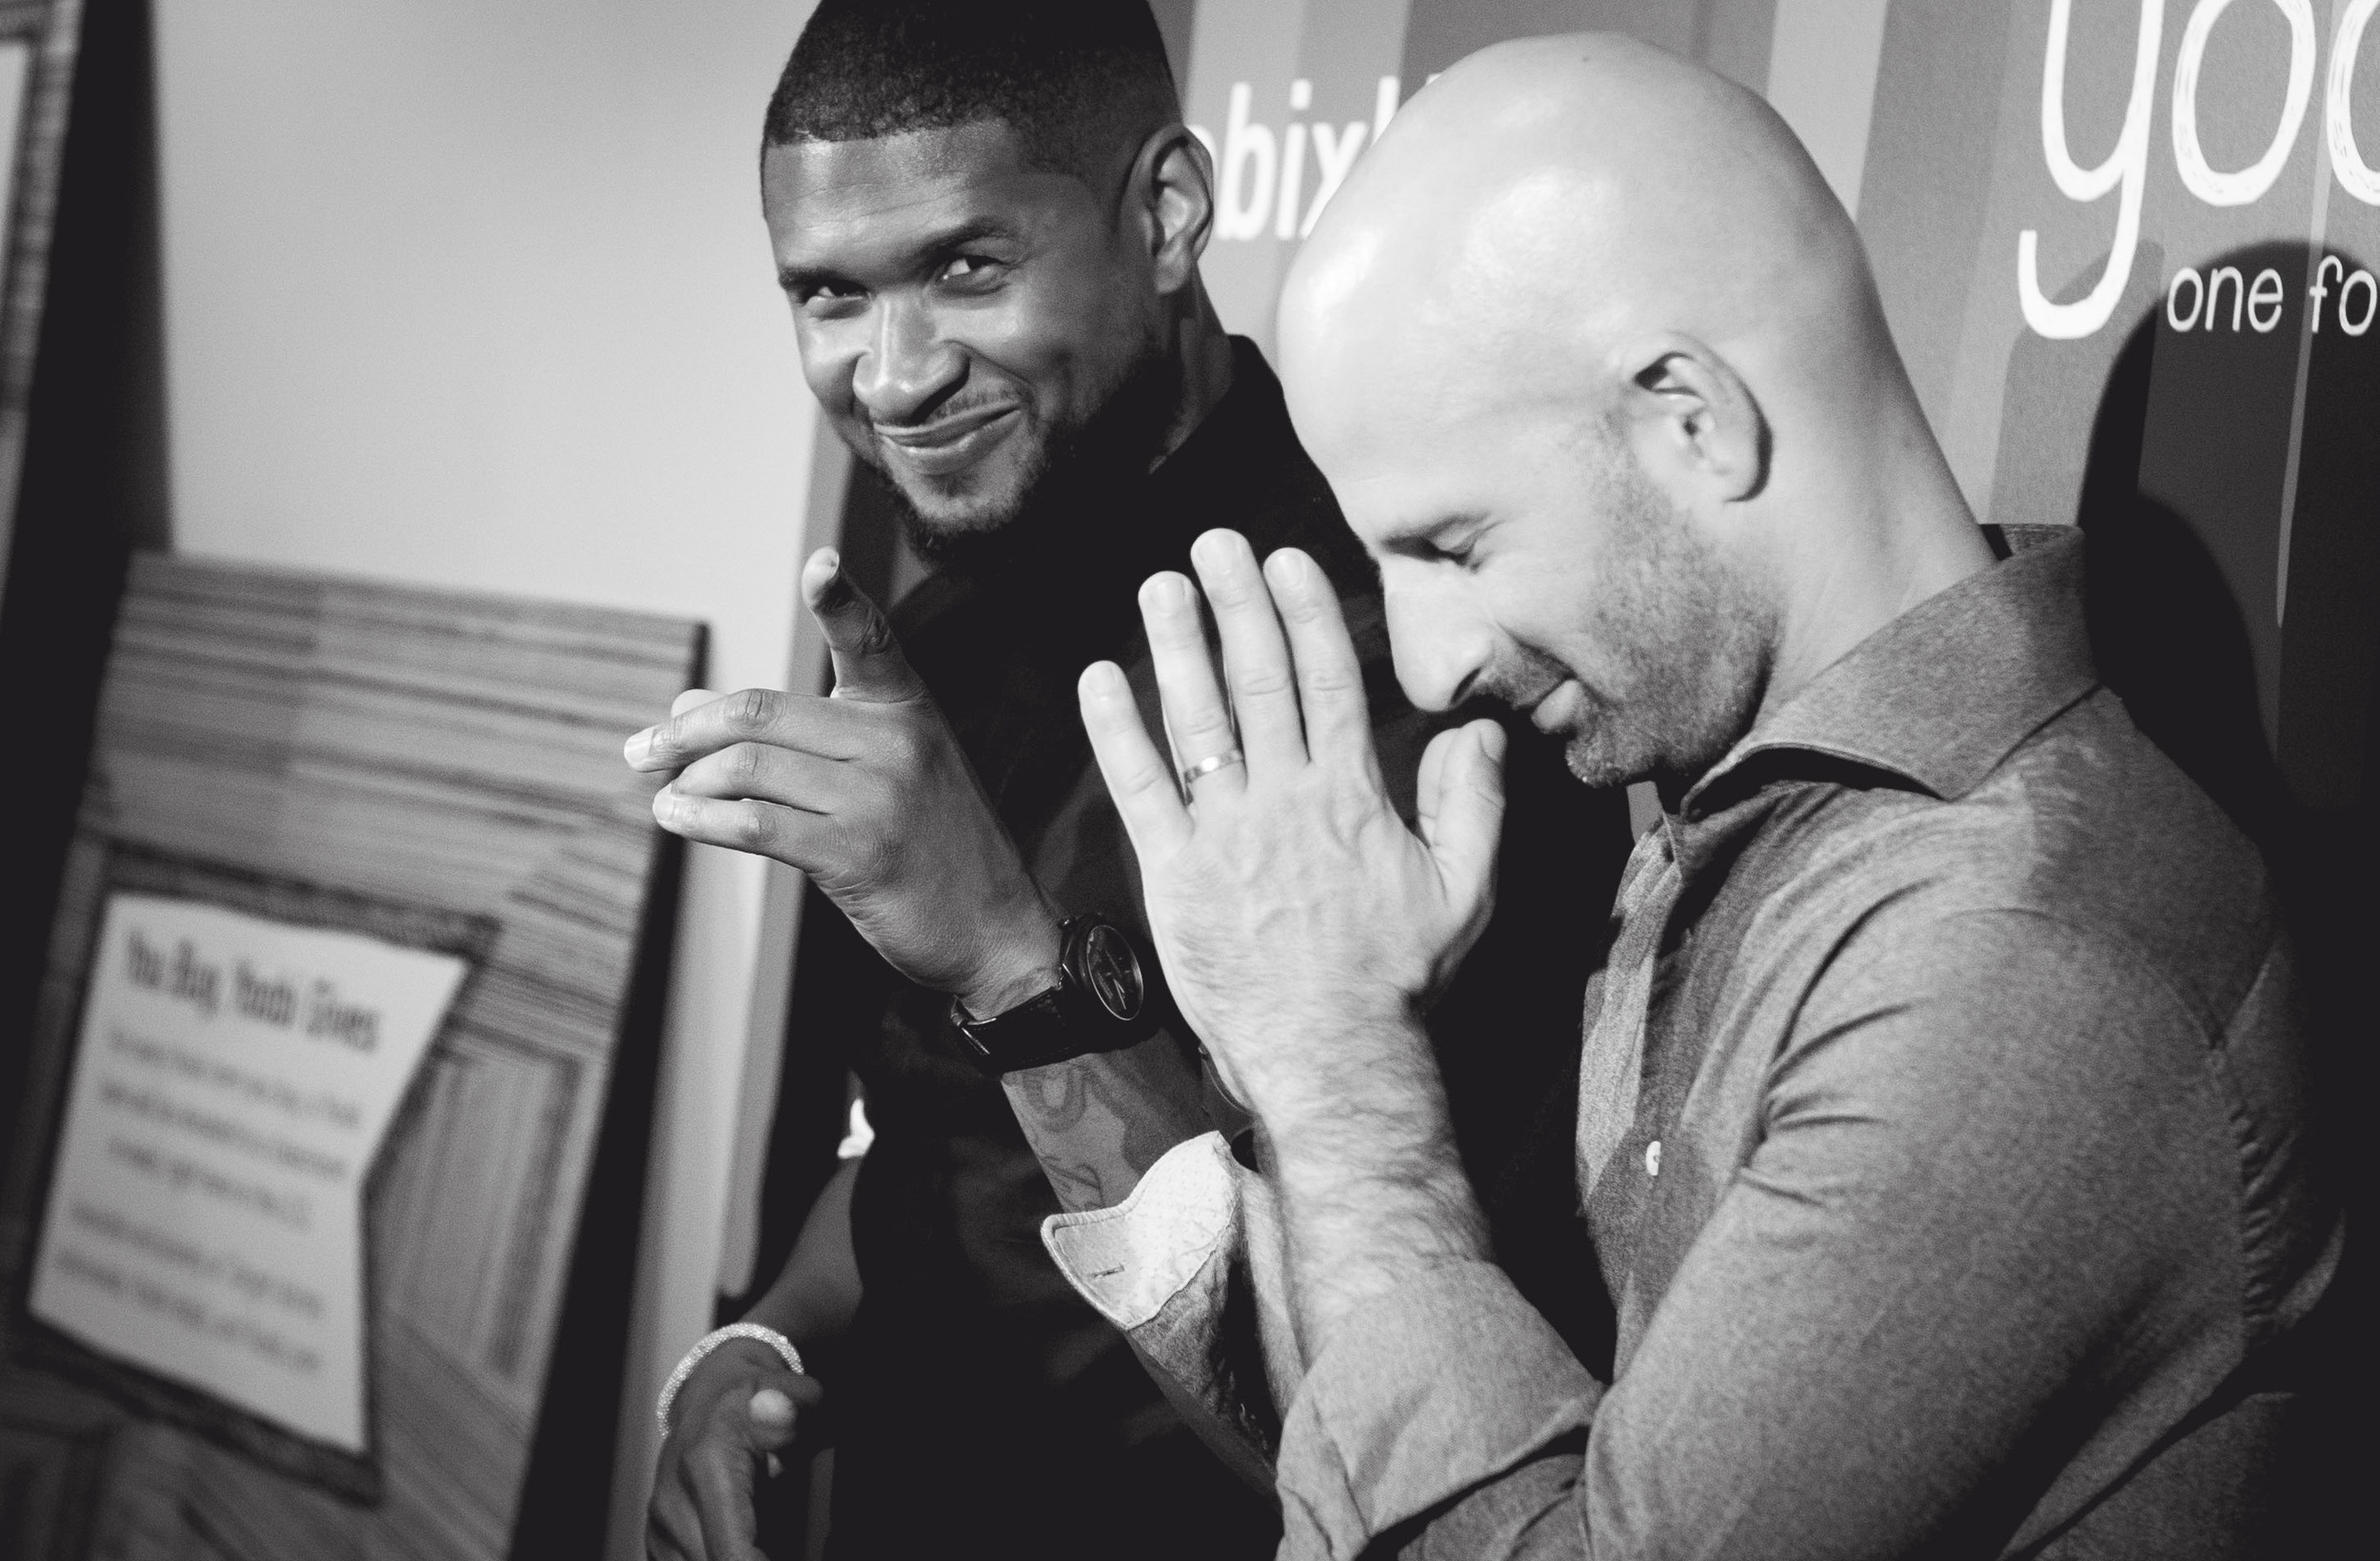 Usher and Ido Lefflar